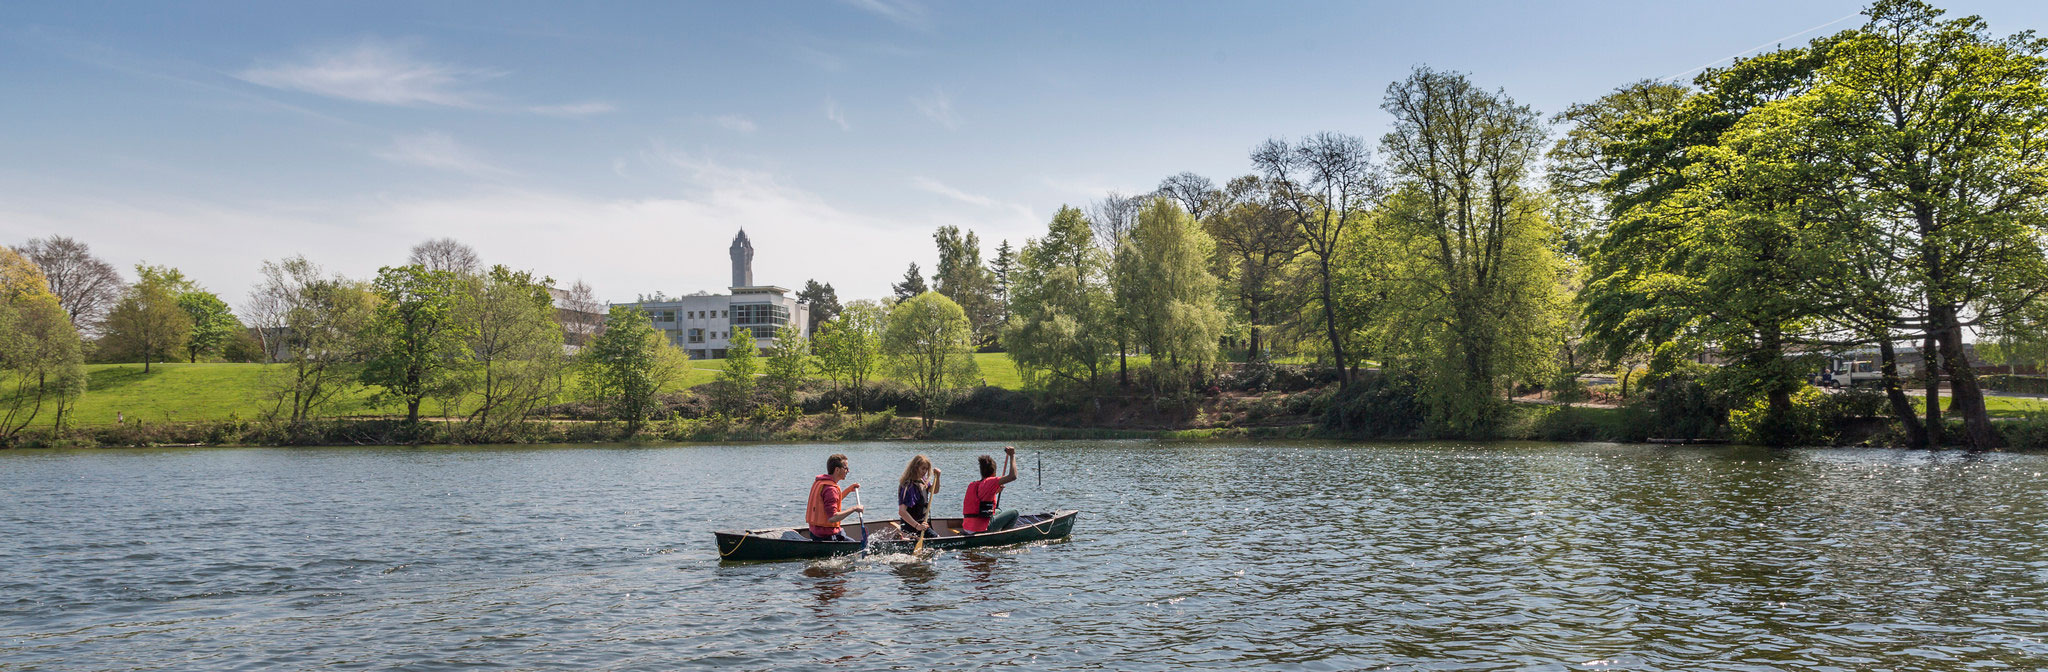 Canoers on campus loch